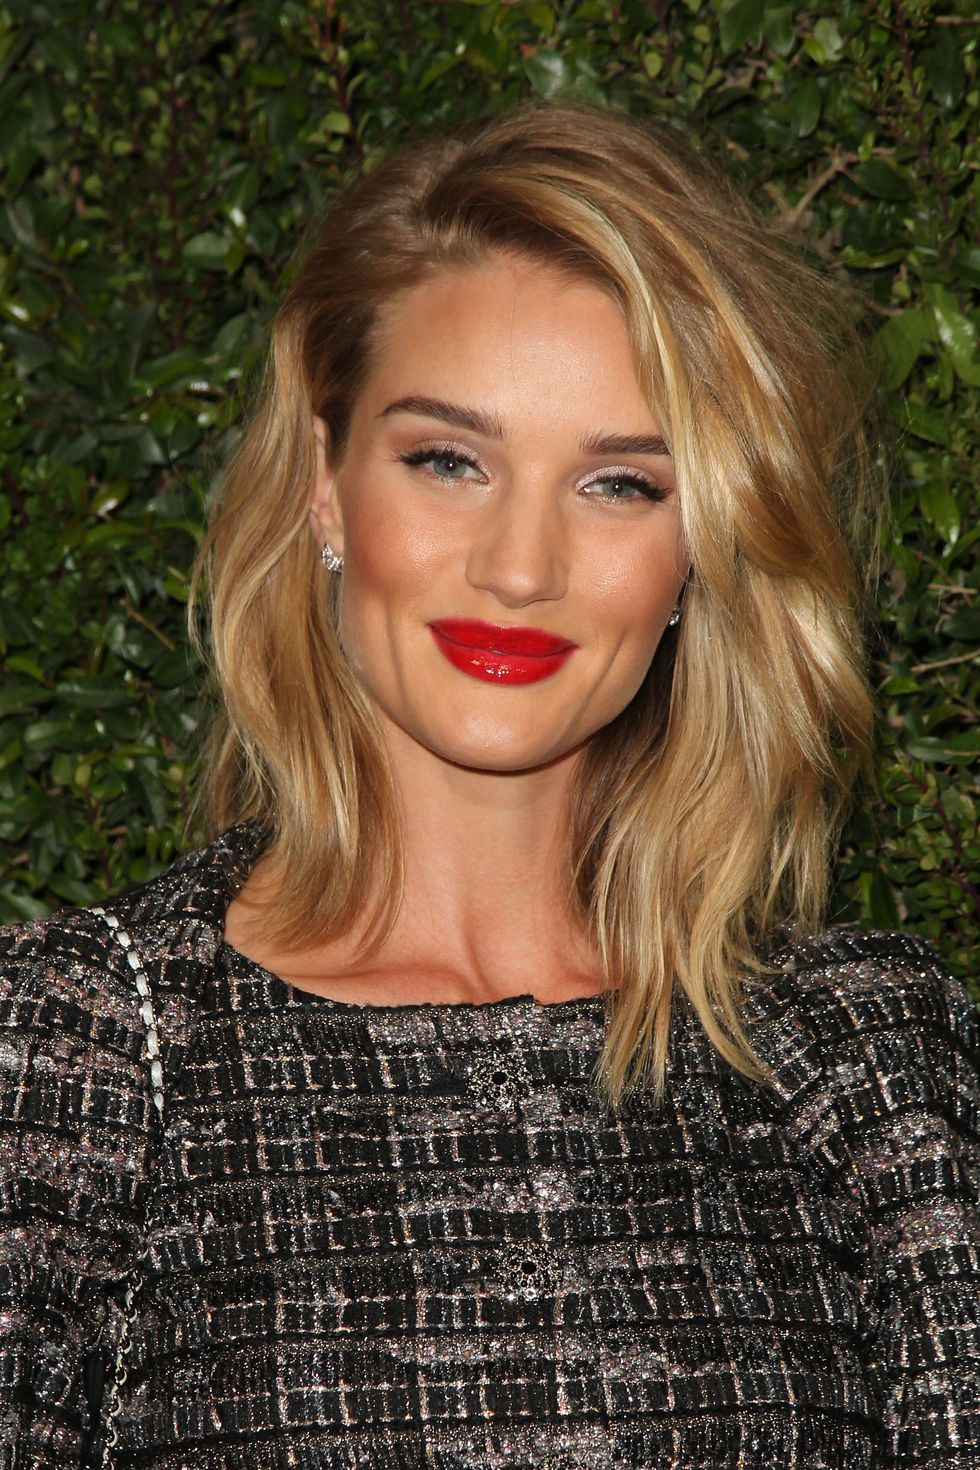 62 Medium-Length Hairstyles That We Can't Wait to Try